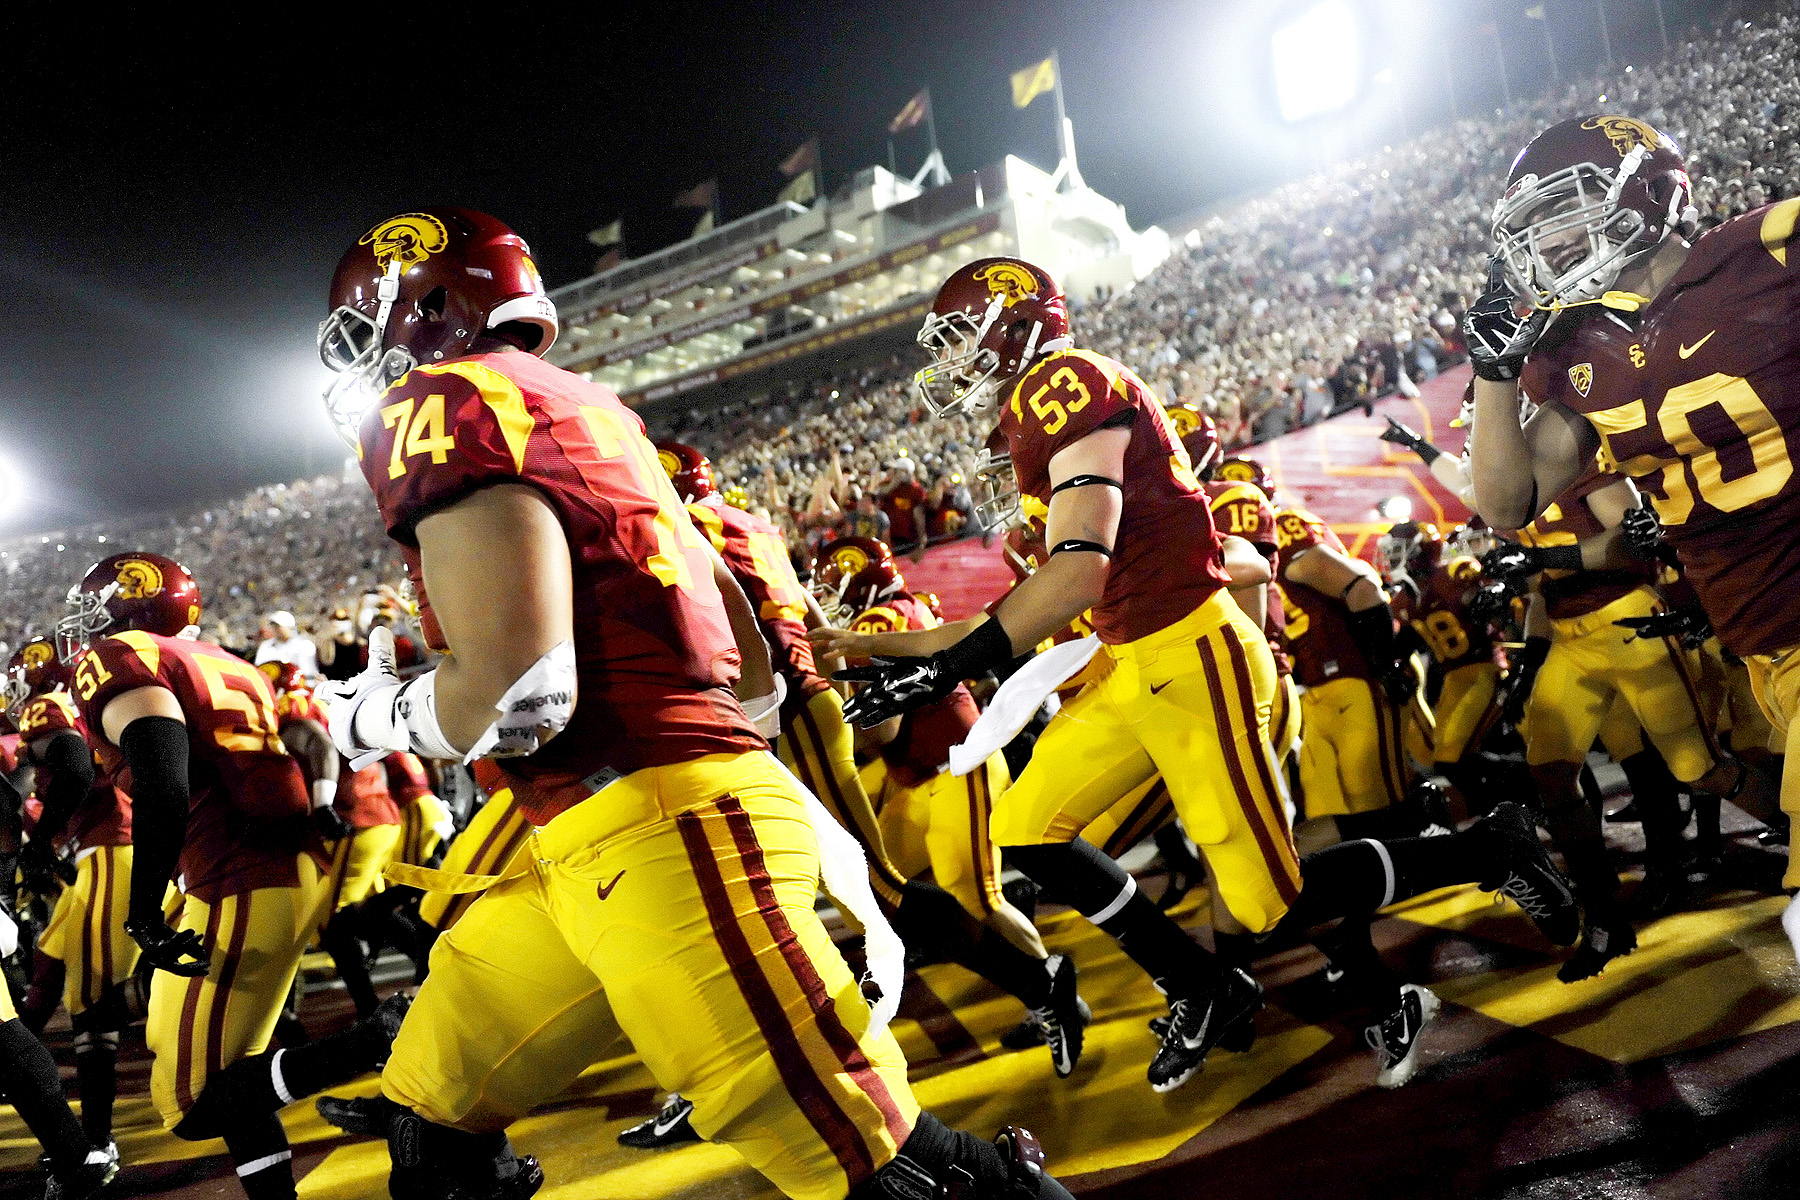 Get the latest USC Trojans news scores stats standings rumors and more from ESPN